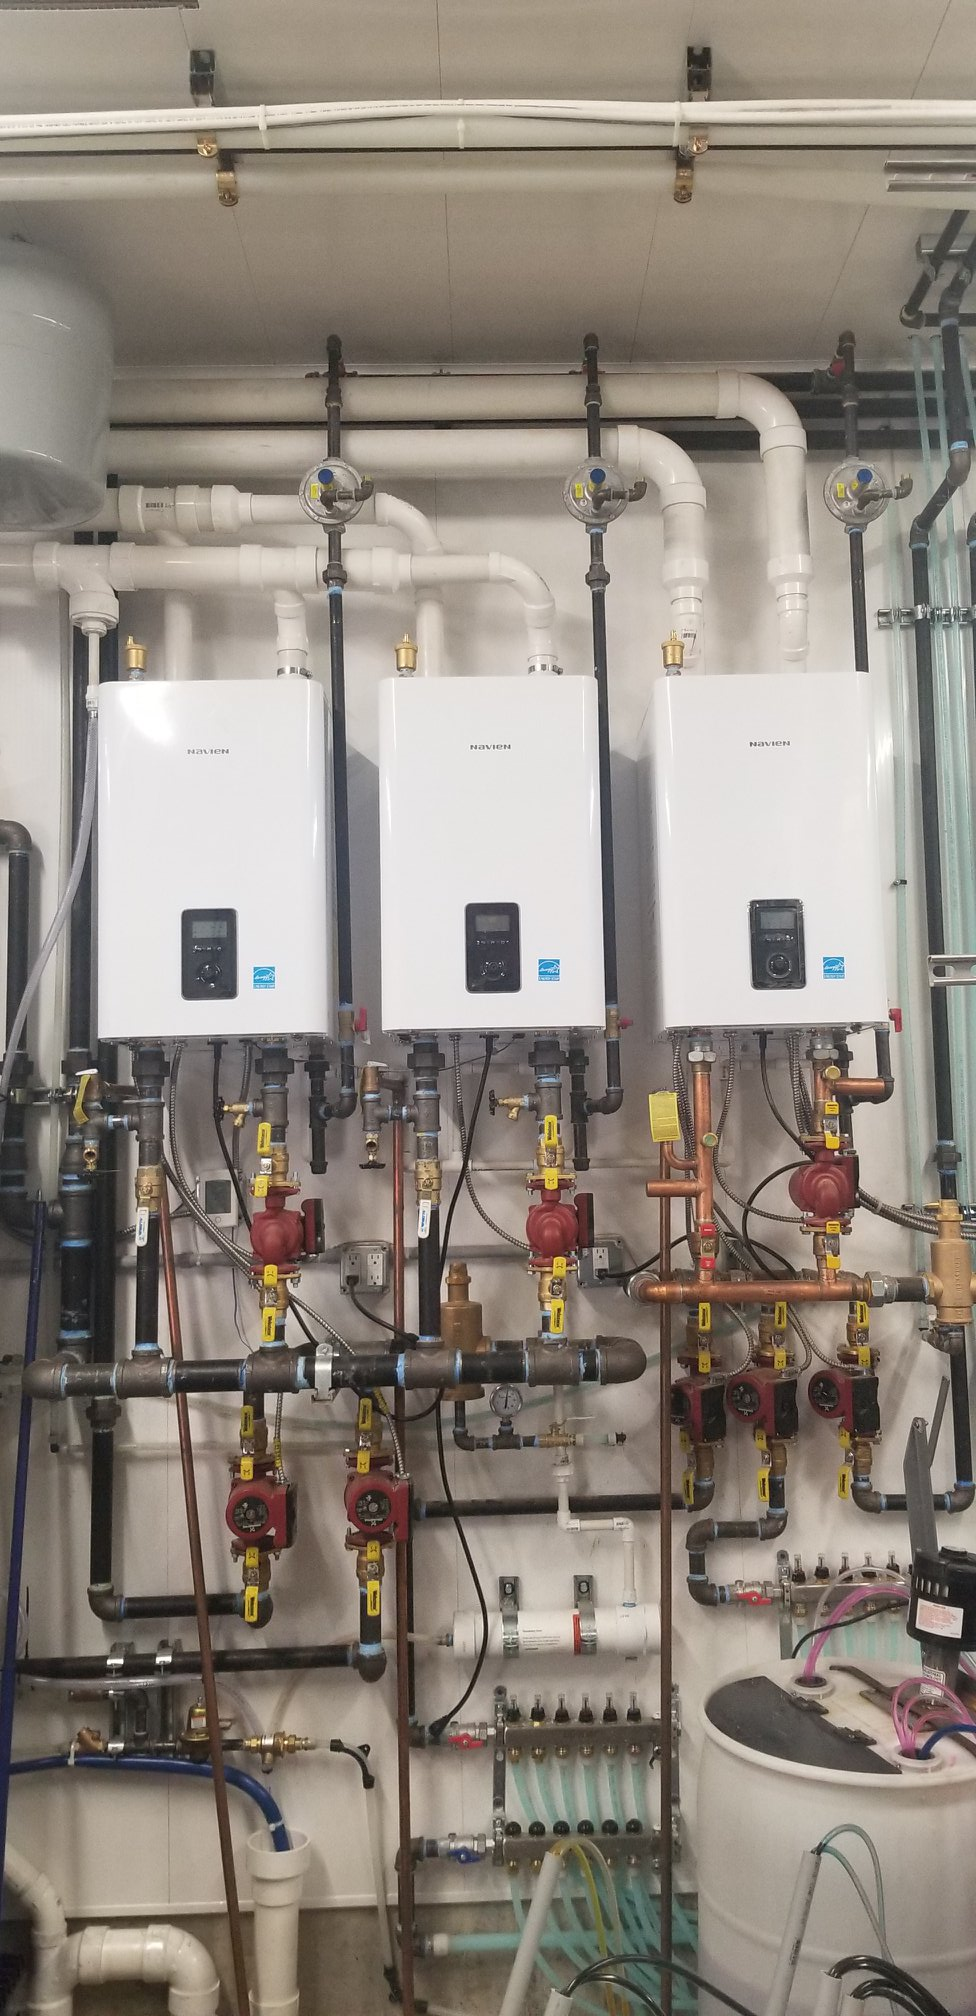 Three condensing boilers that are installed side by side